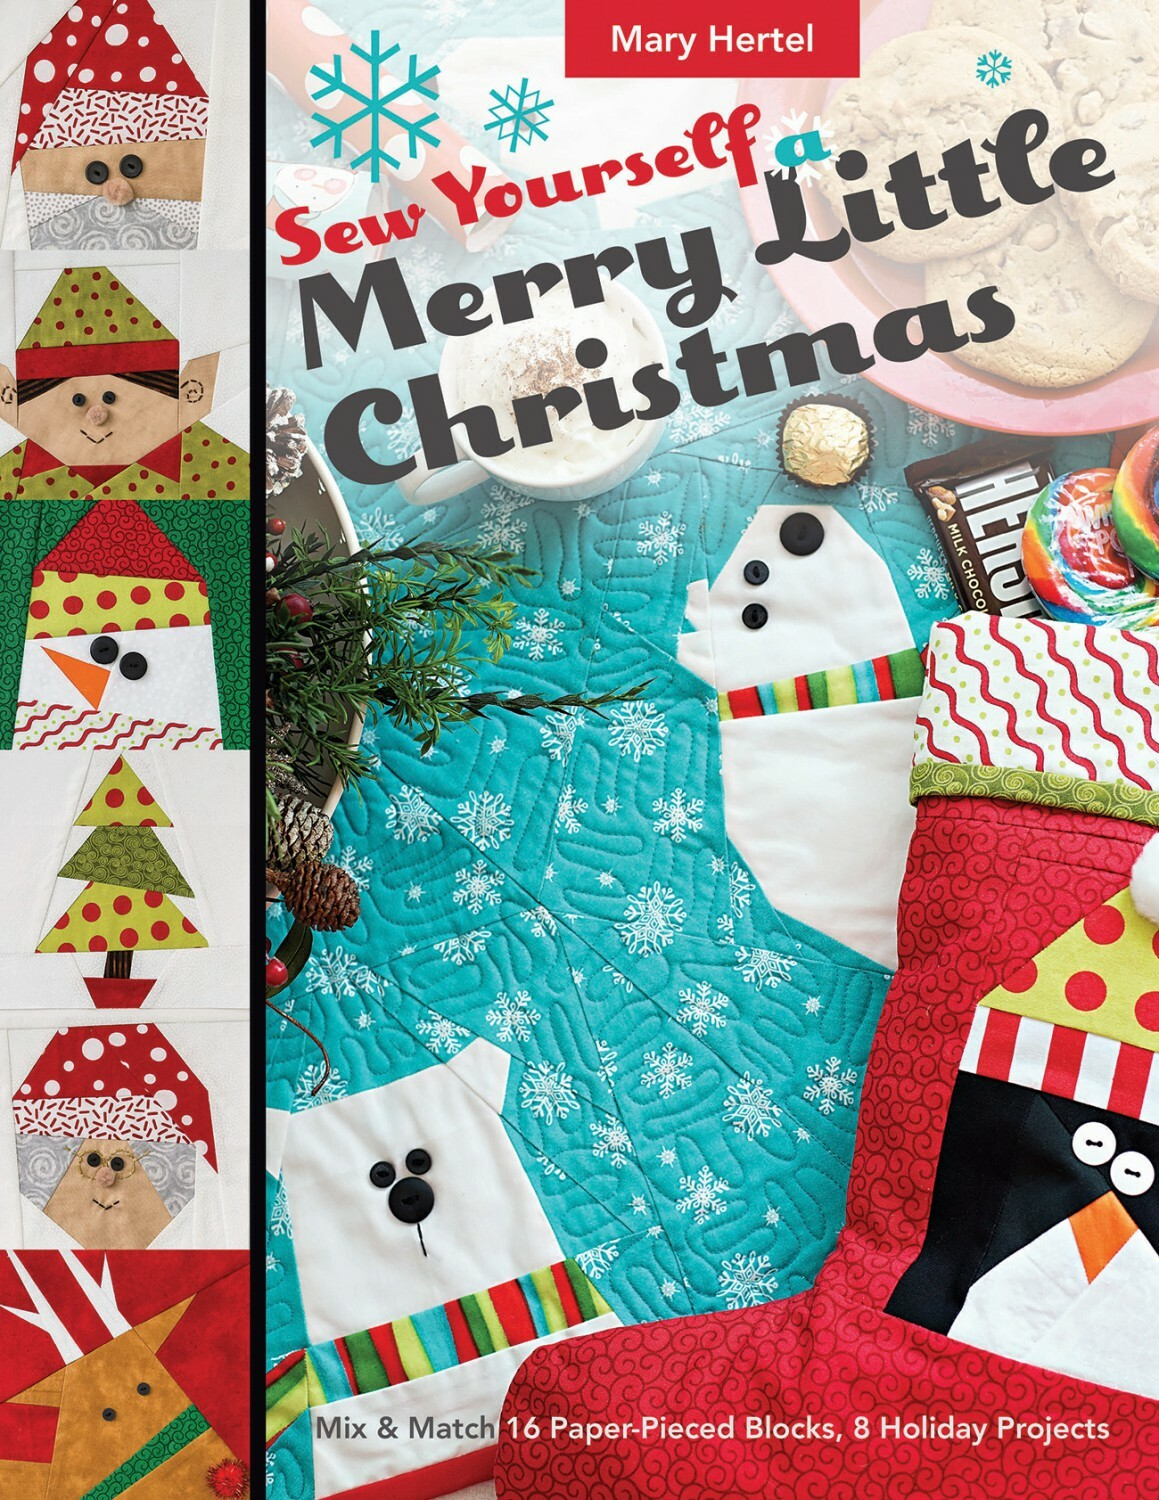 Sew Yourself a Merry Little Christmas Book 56616